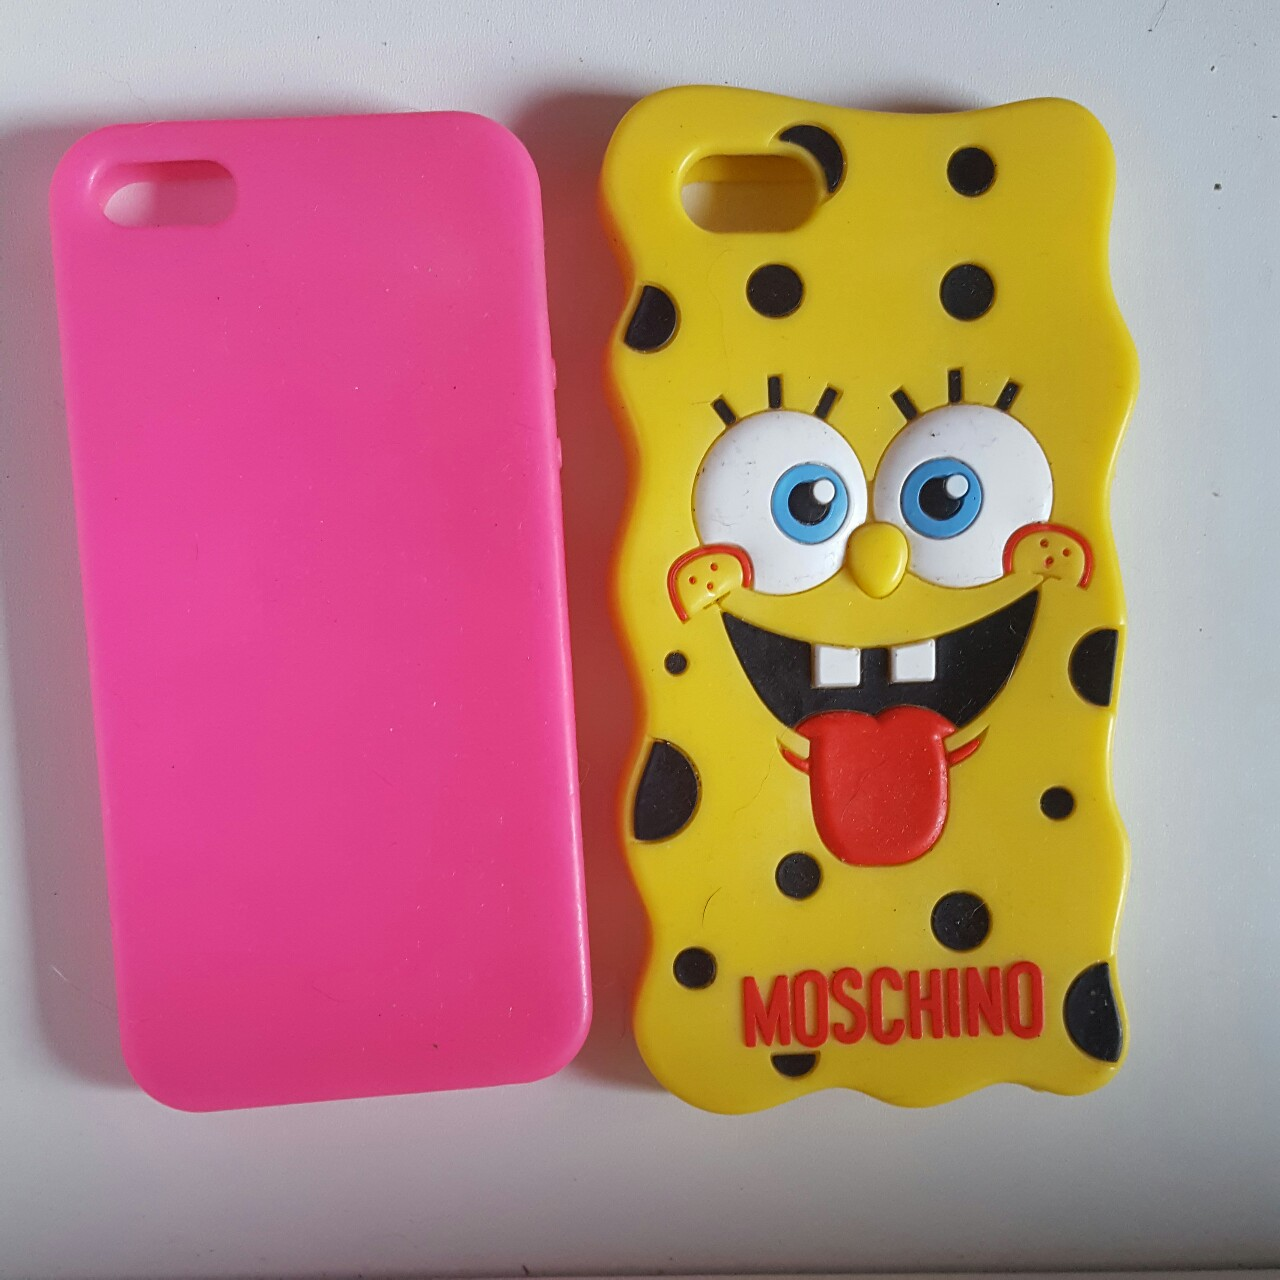 cover iphone 5s moschino